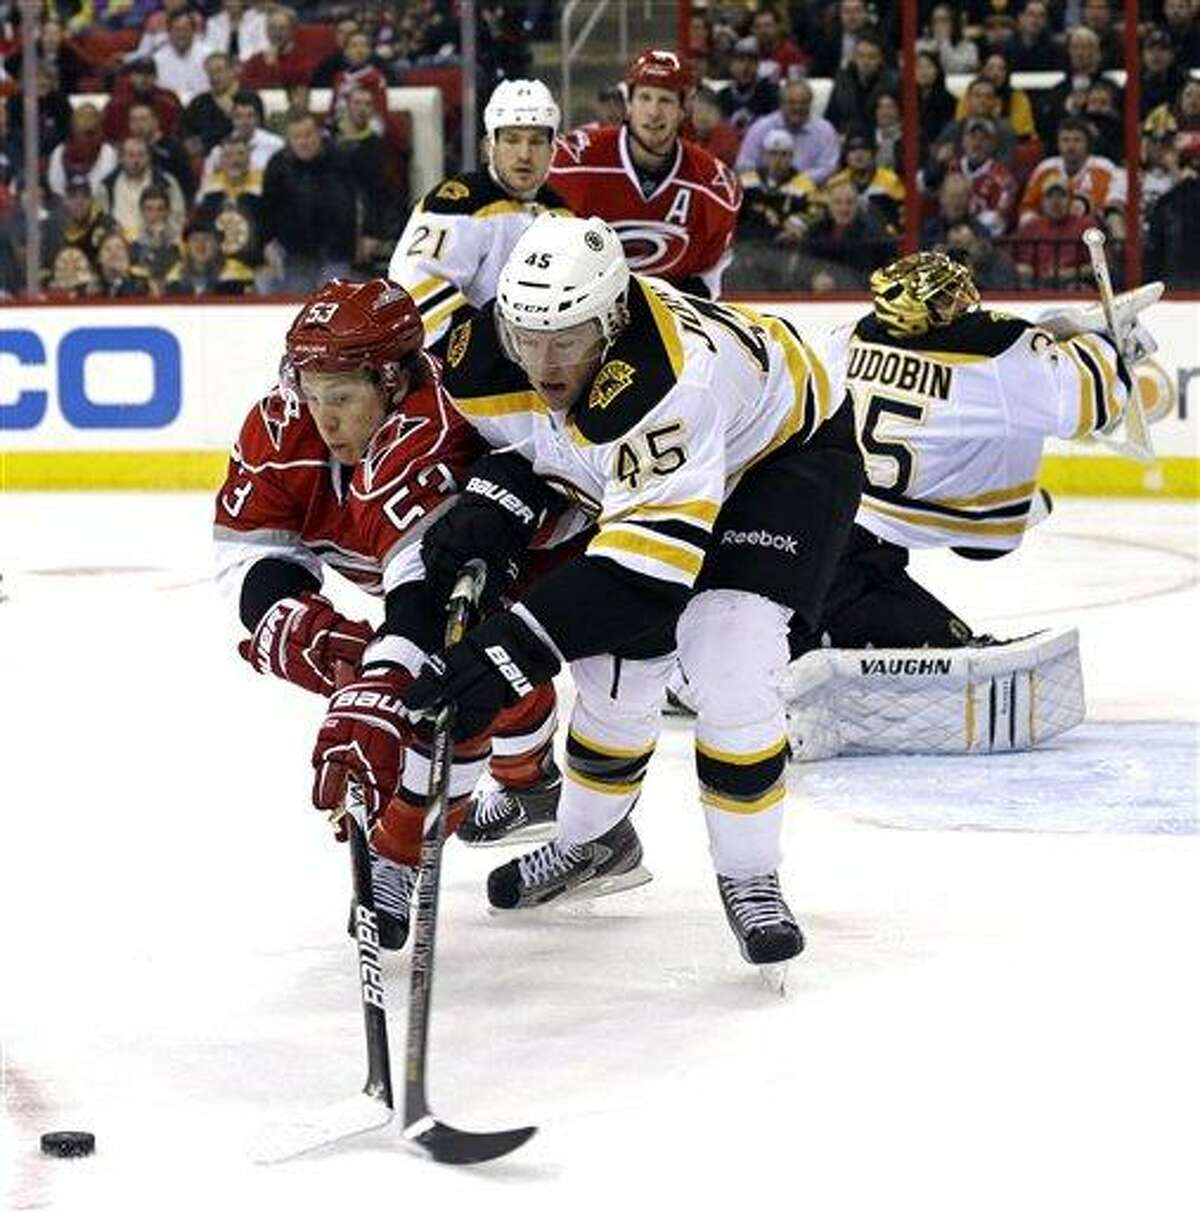 Carolina Hurricanes' Jeff Skinner (53) and Boston Bruins' Aaron Johnson (45) chase the puck during the second period of an NHL hockey game in Raleigh, N.C., Monday, Jan. 28, 2013. (AP Photo/Gerry Broome)